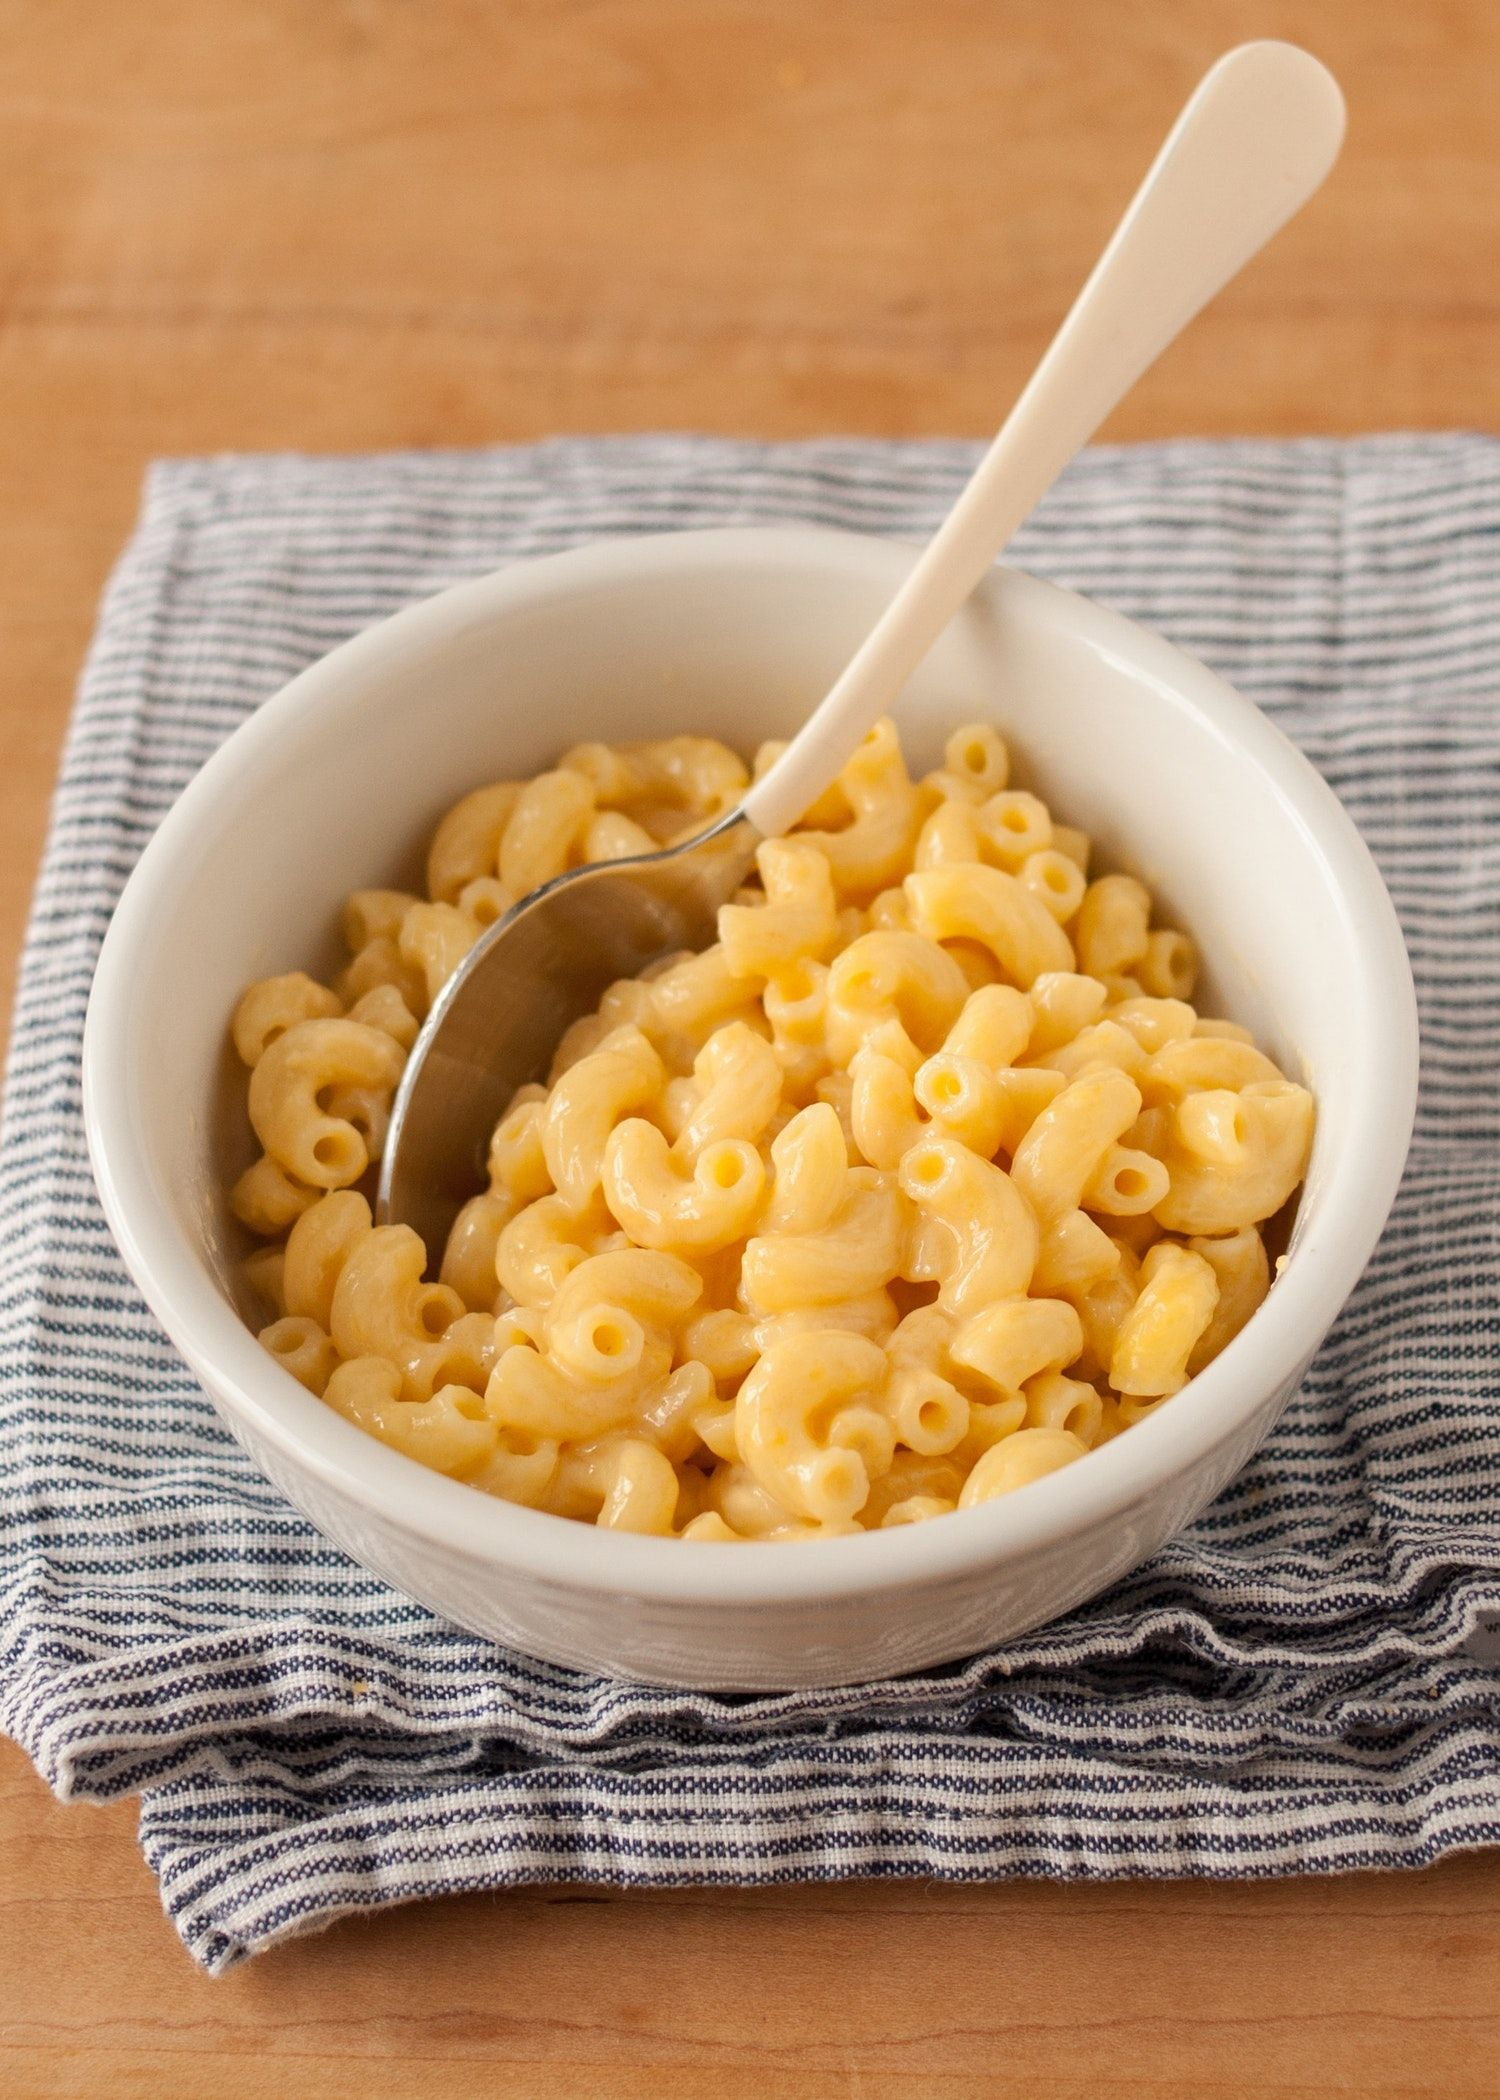 How to make onebowl microwave macaroni and cheese